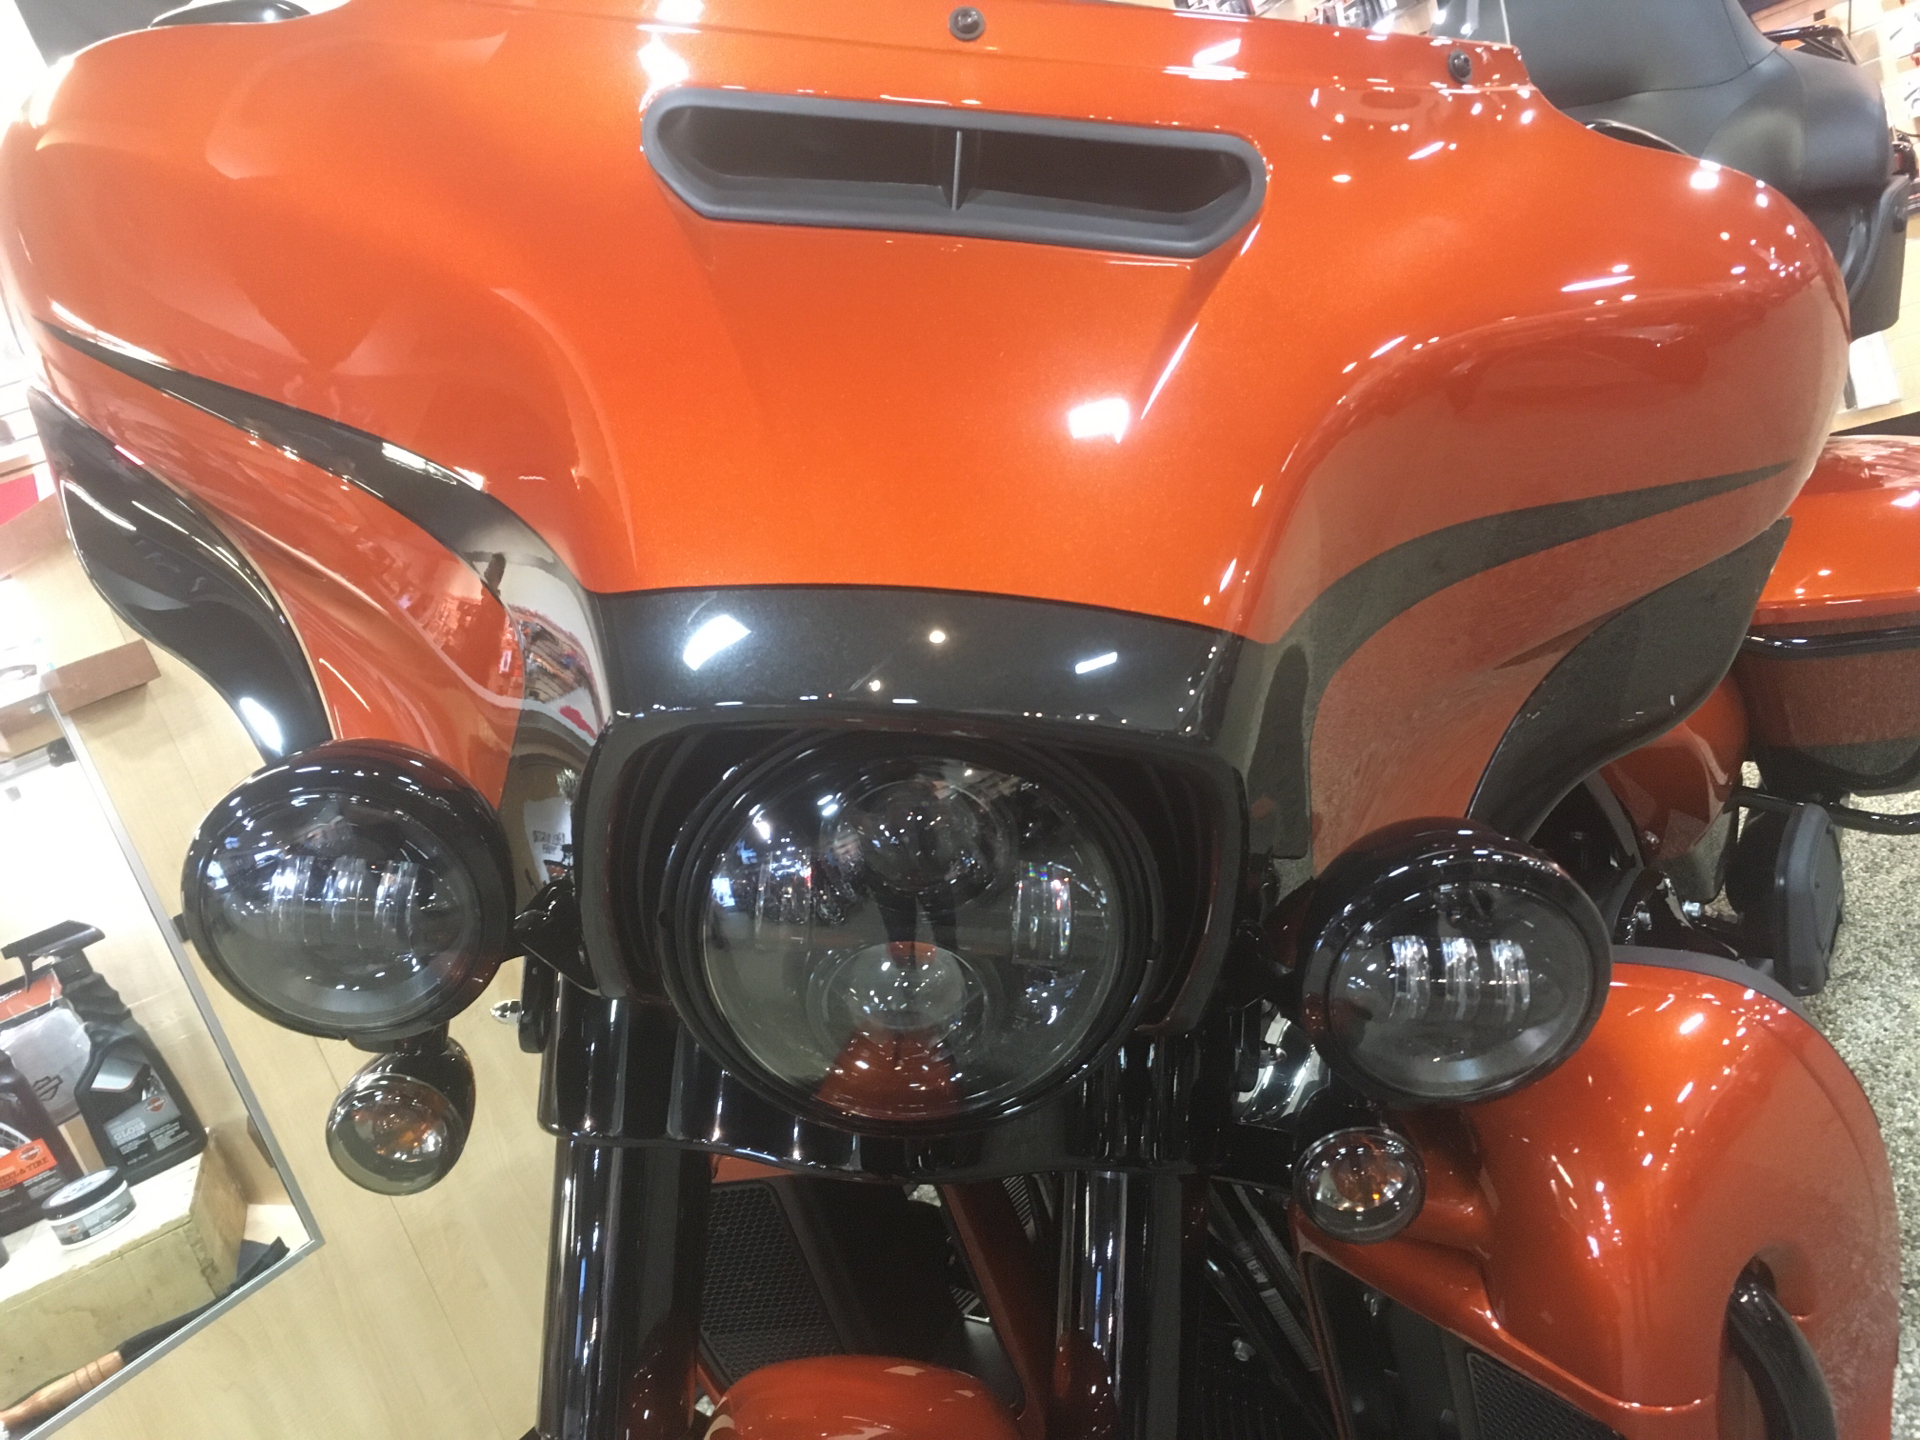 2020 Harley-Davidson Ultra Limited in Madison, Wisconsin - Photo 9